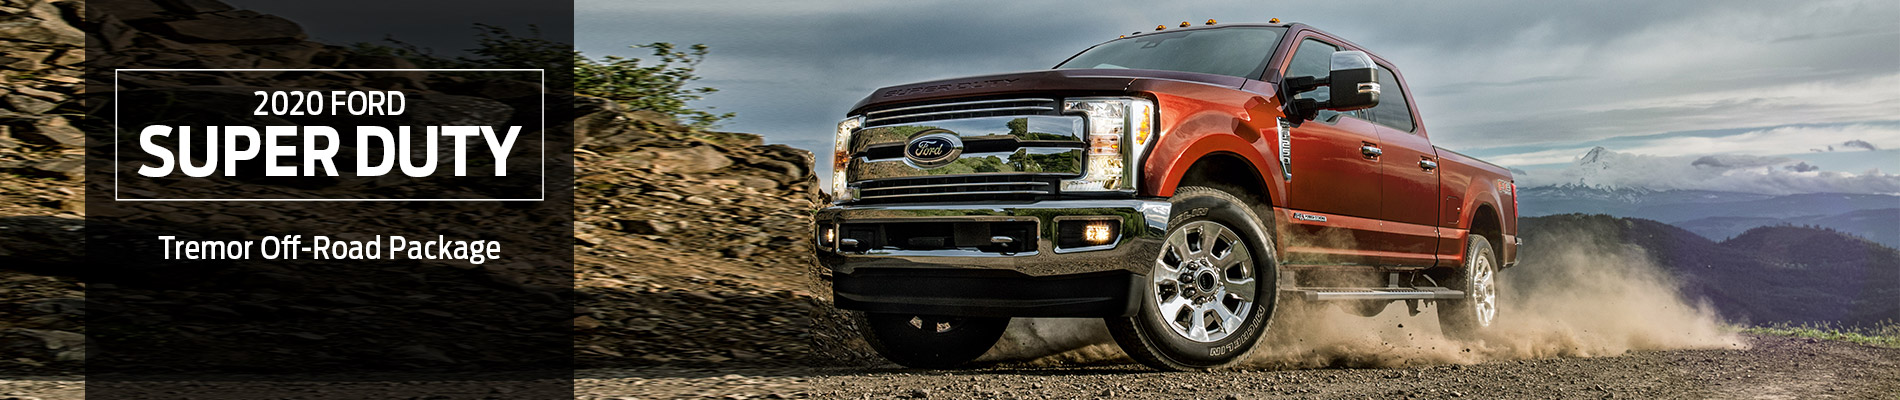 Ford Super Duty Tremor Off-Road Package - Sun State Ford - Orlando, FL